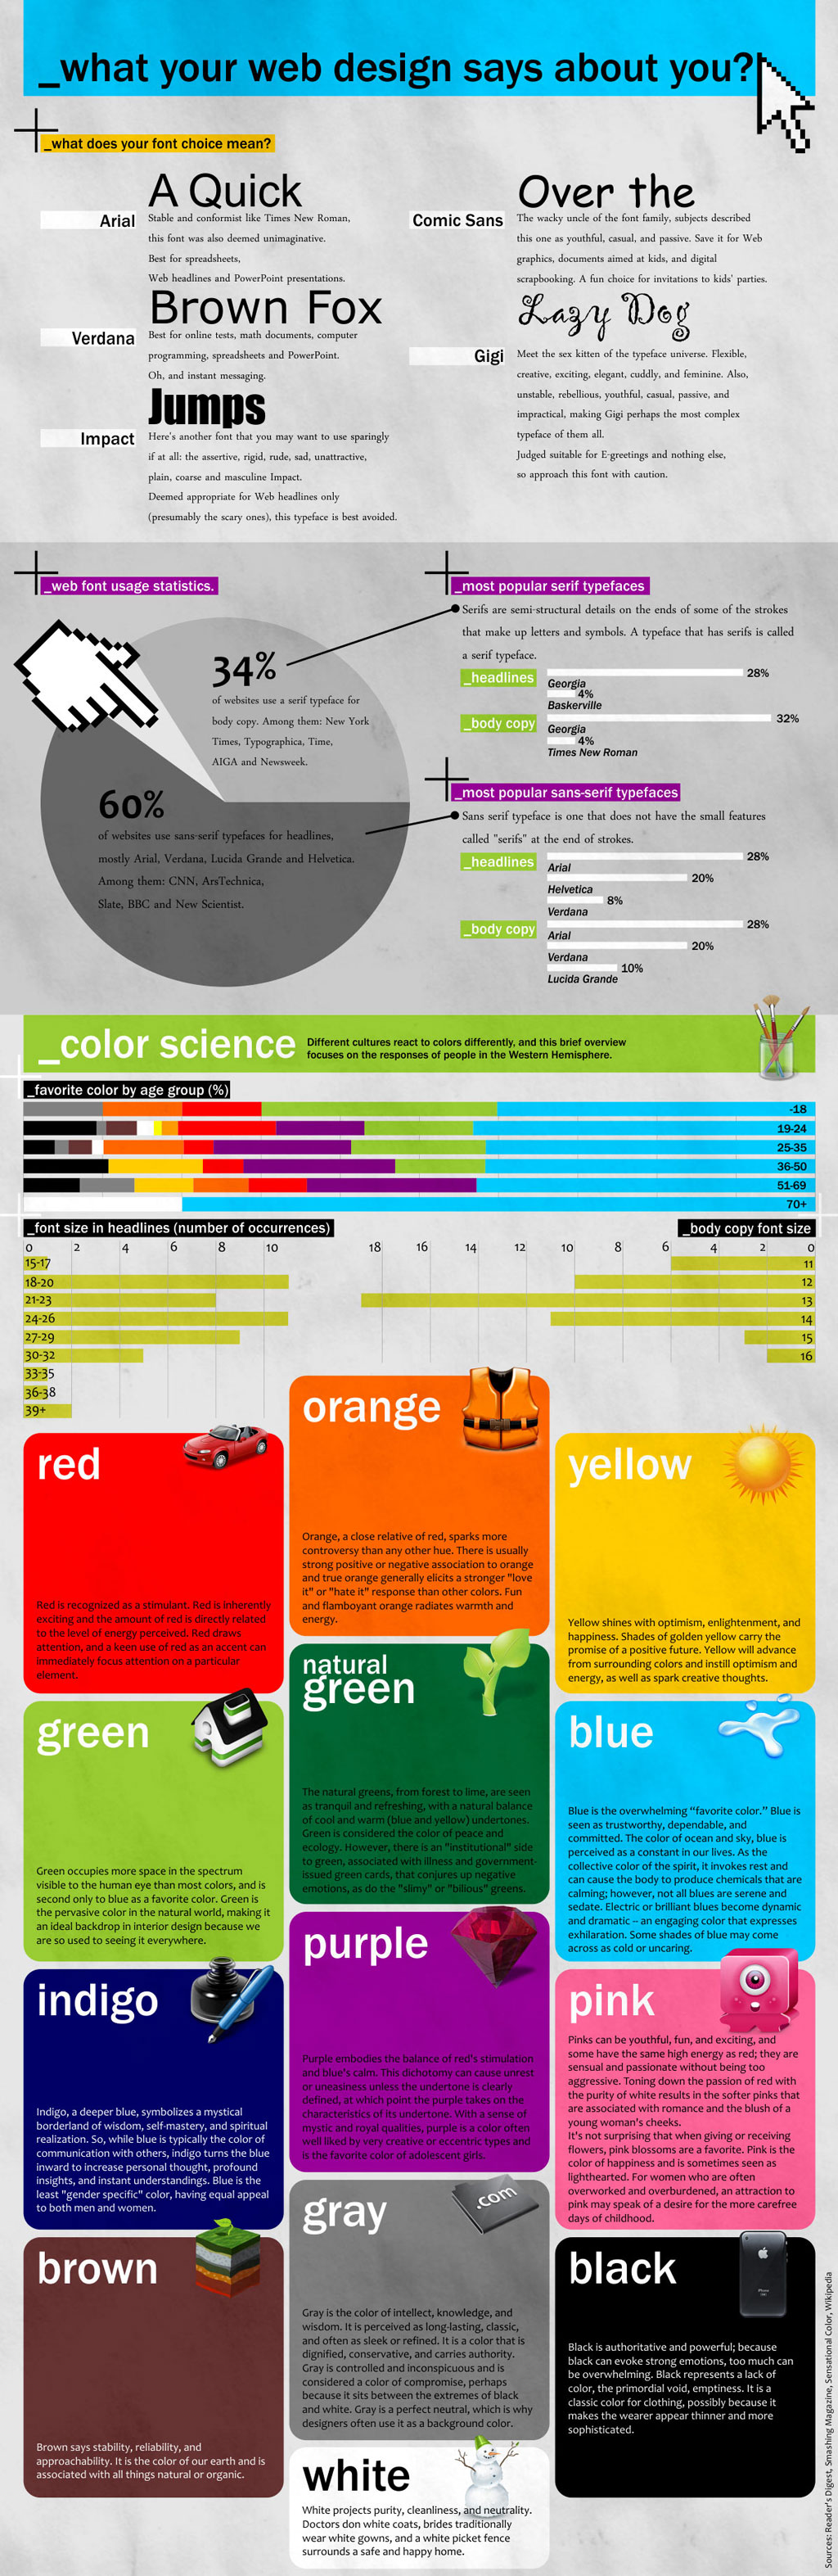 Web Design Says About You